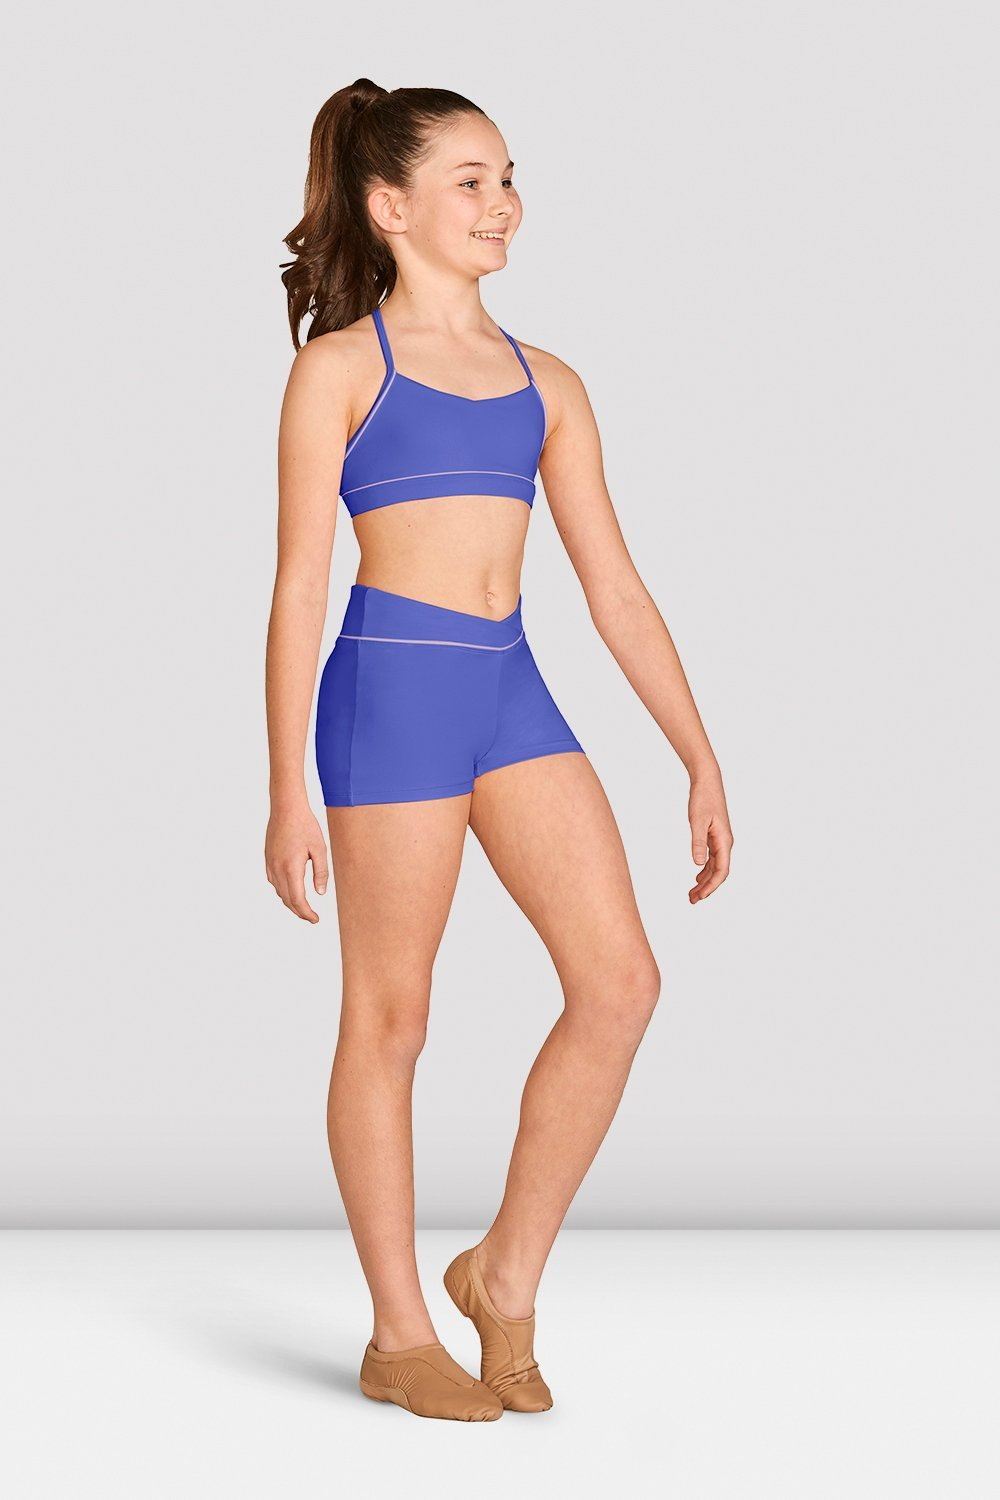 Bloch Girls Racer Back Crop Top - FT5238C